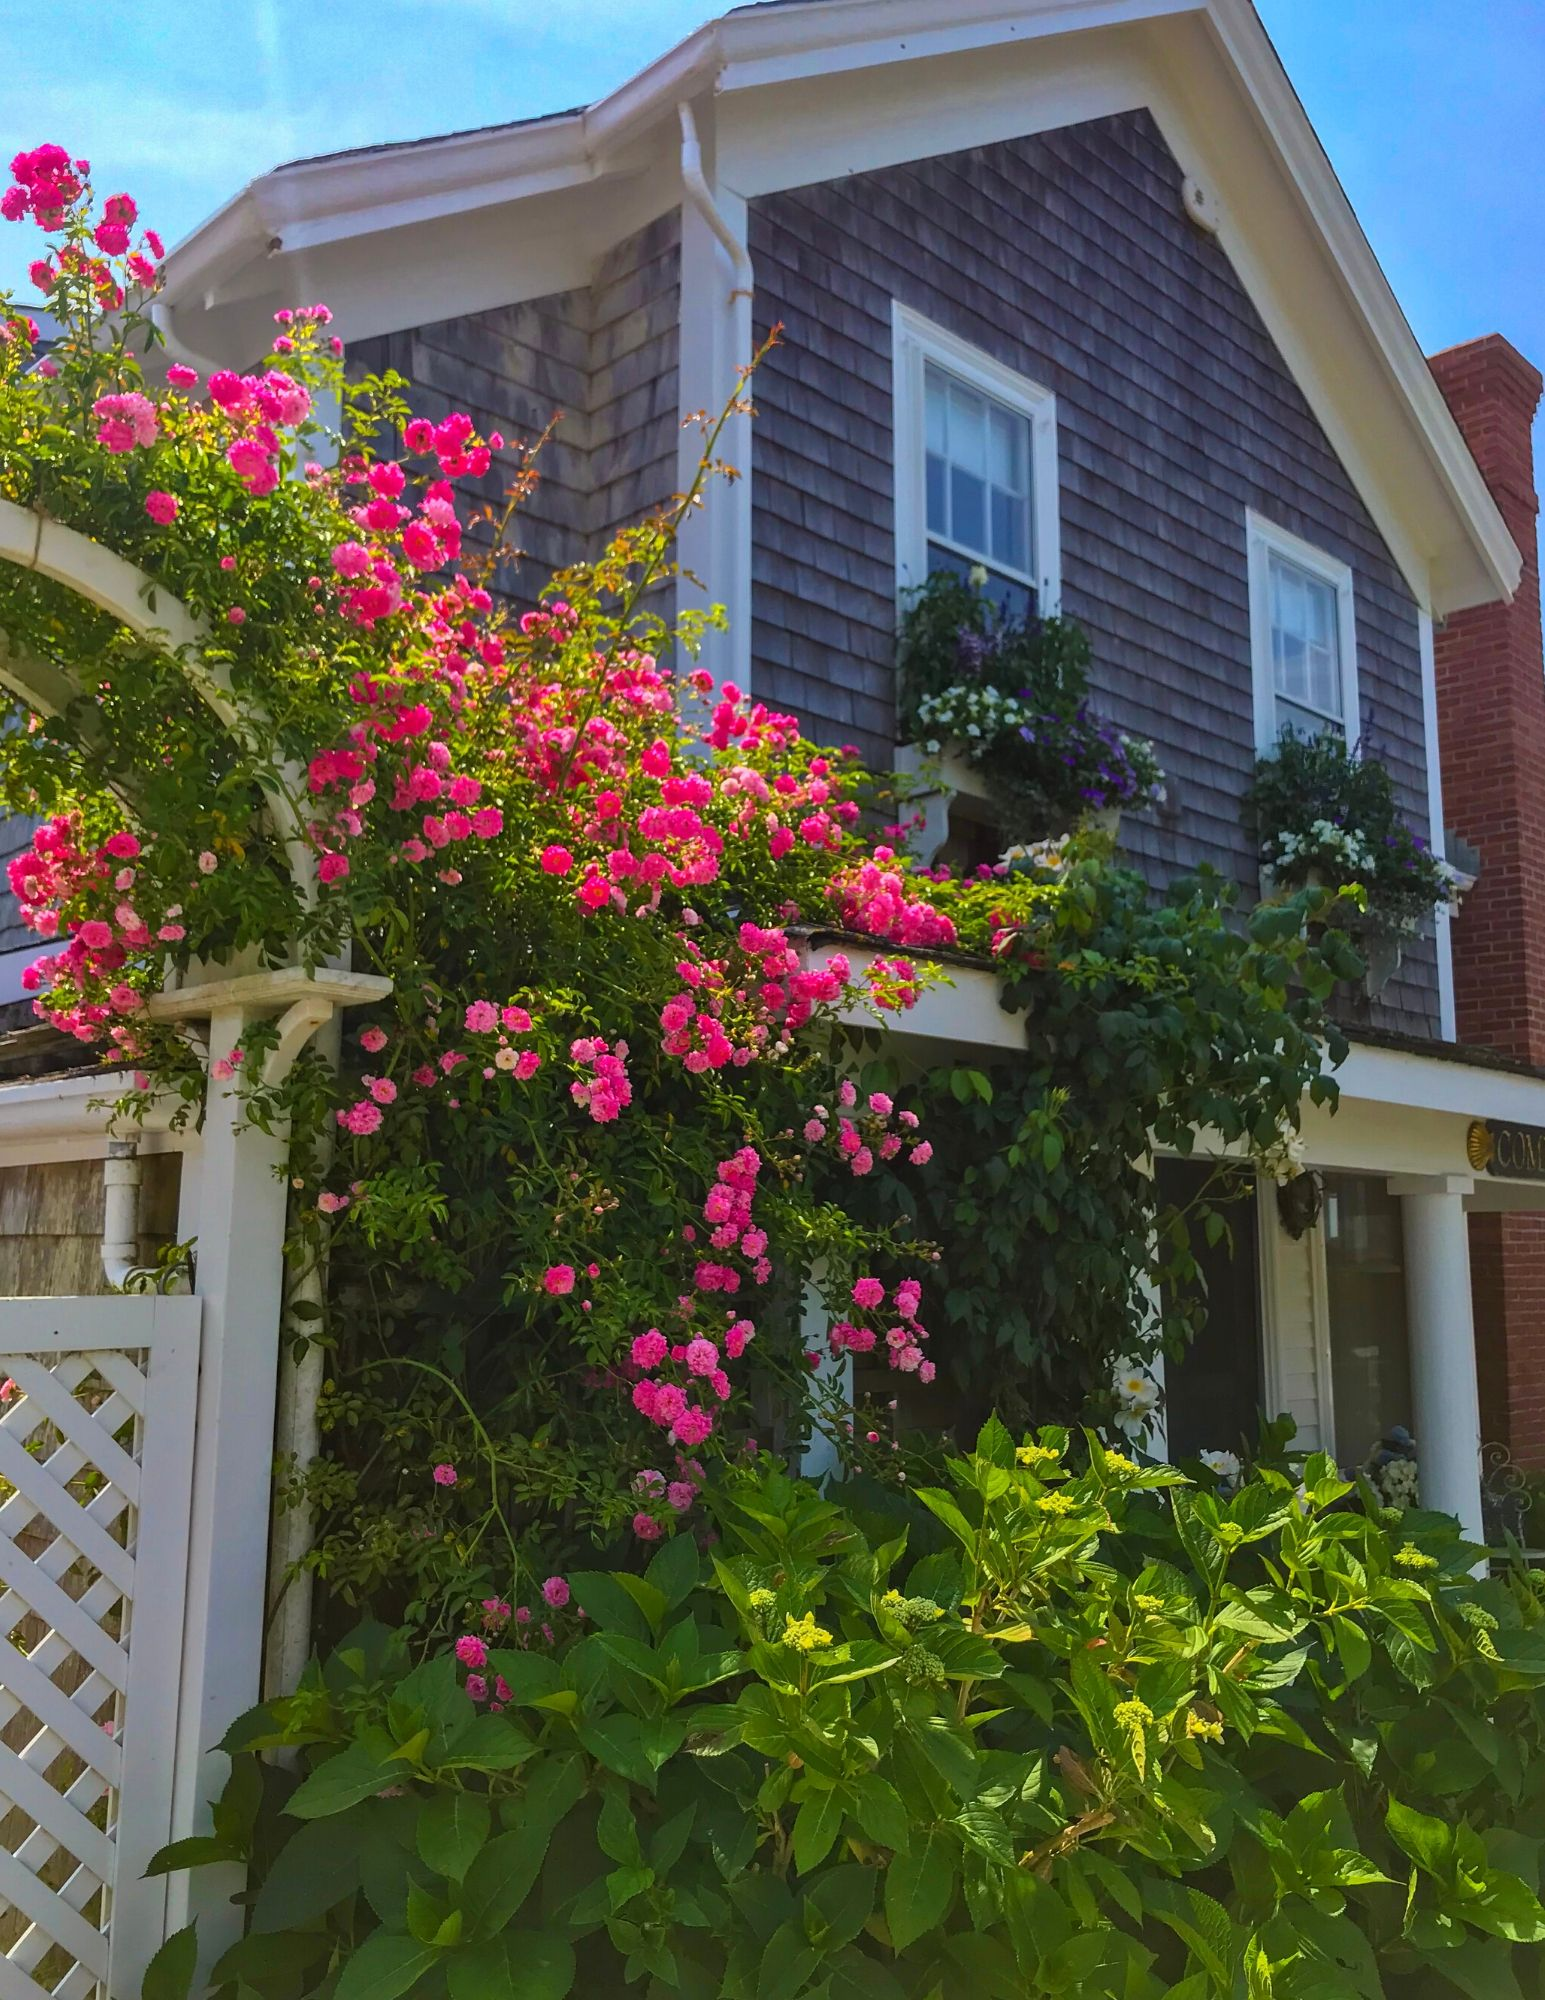 Nantucket Rose Covered Cottages in Sconset-20